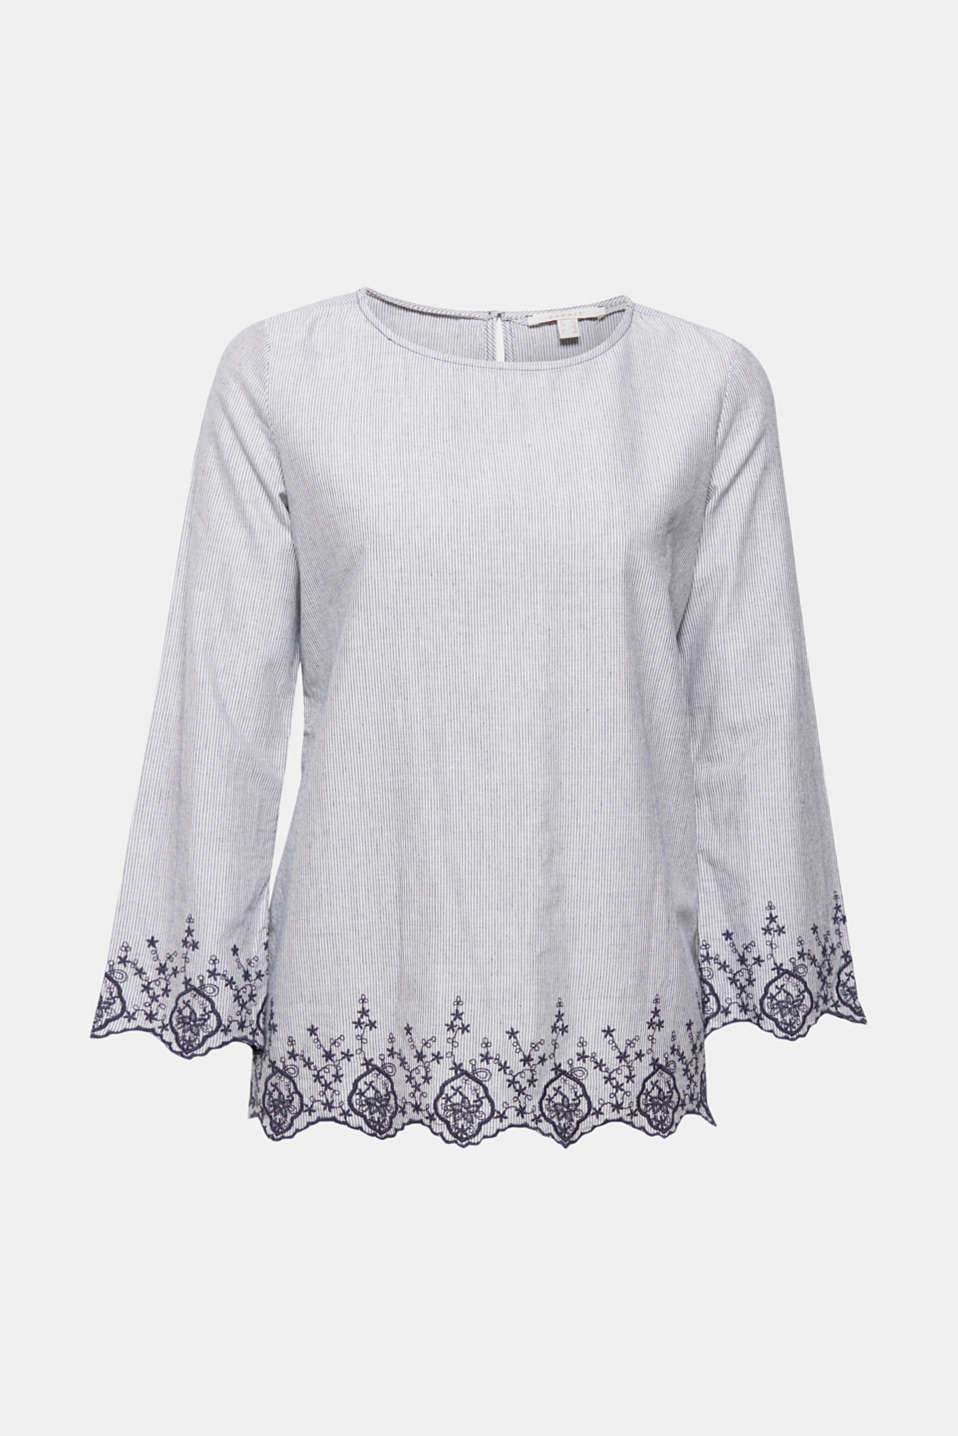 Naturally lightweight and pretty at the same time: This blouse perfectly combines a scalloped lace design with fine stripes.